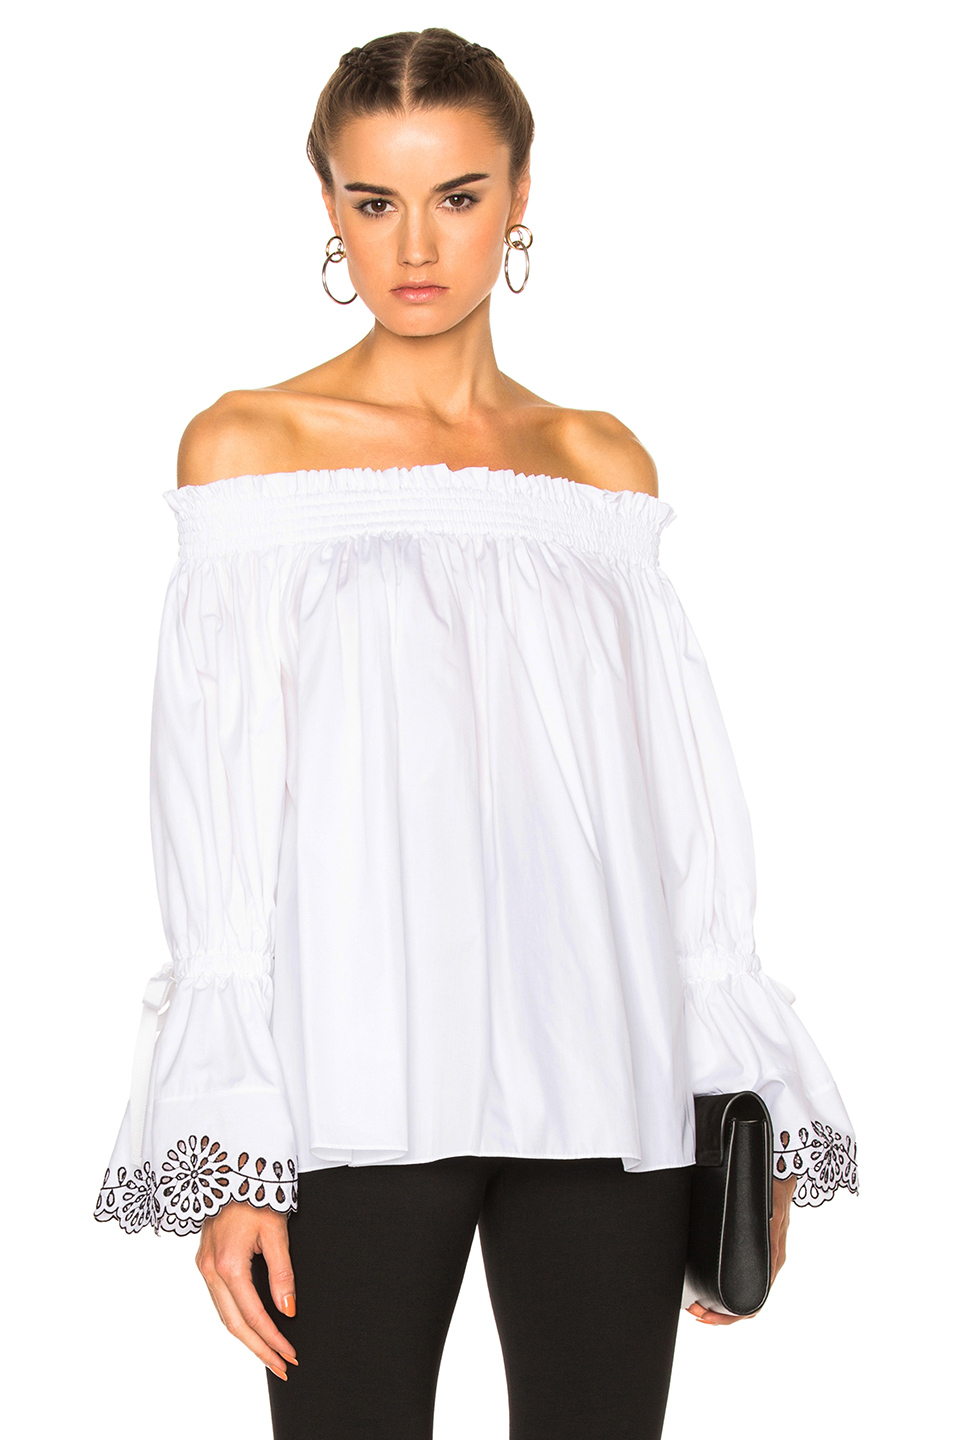 Alexander McQueen Embroidered Top in White